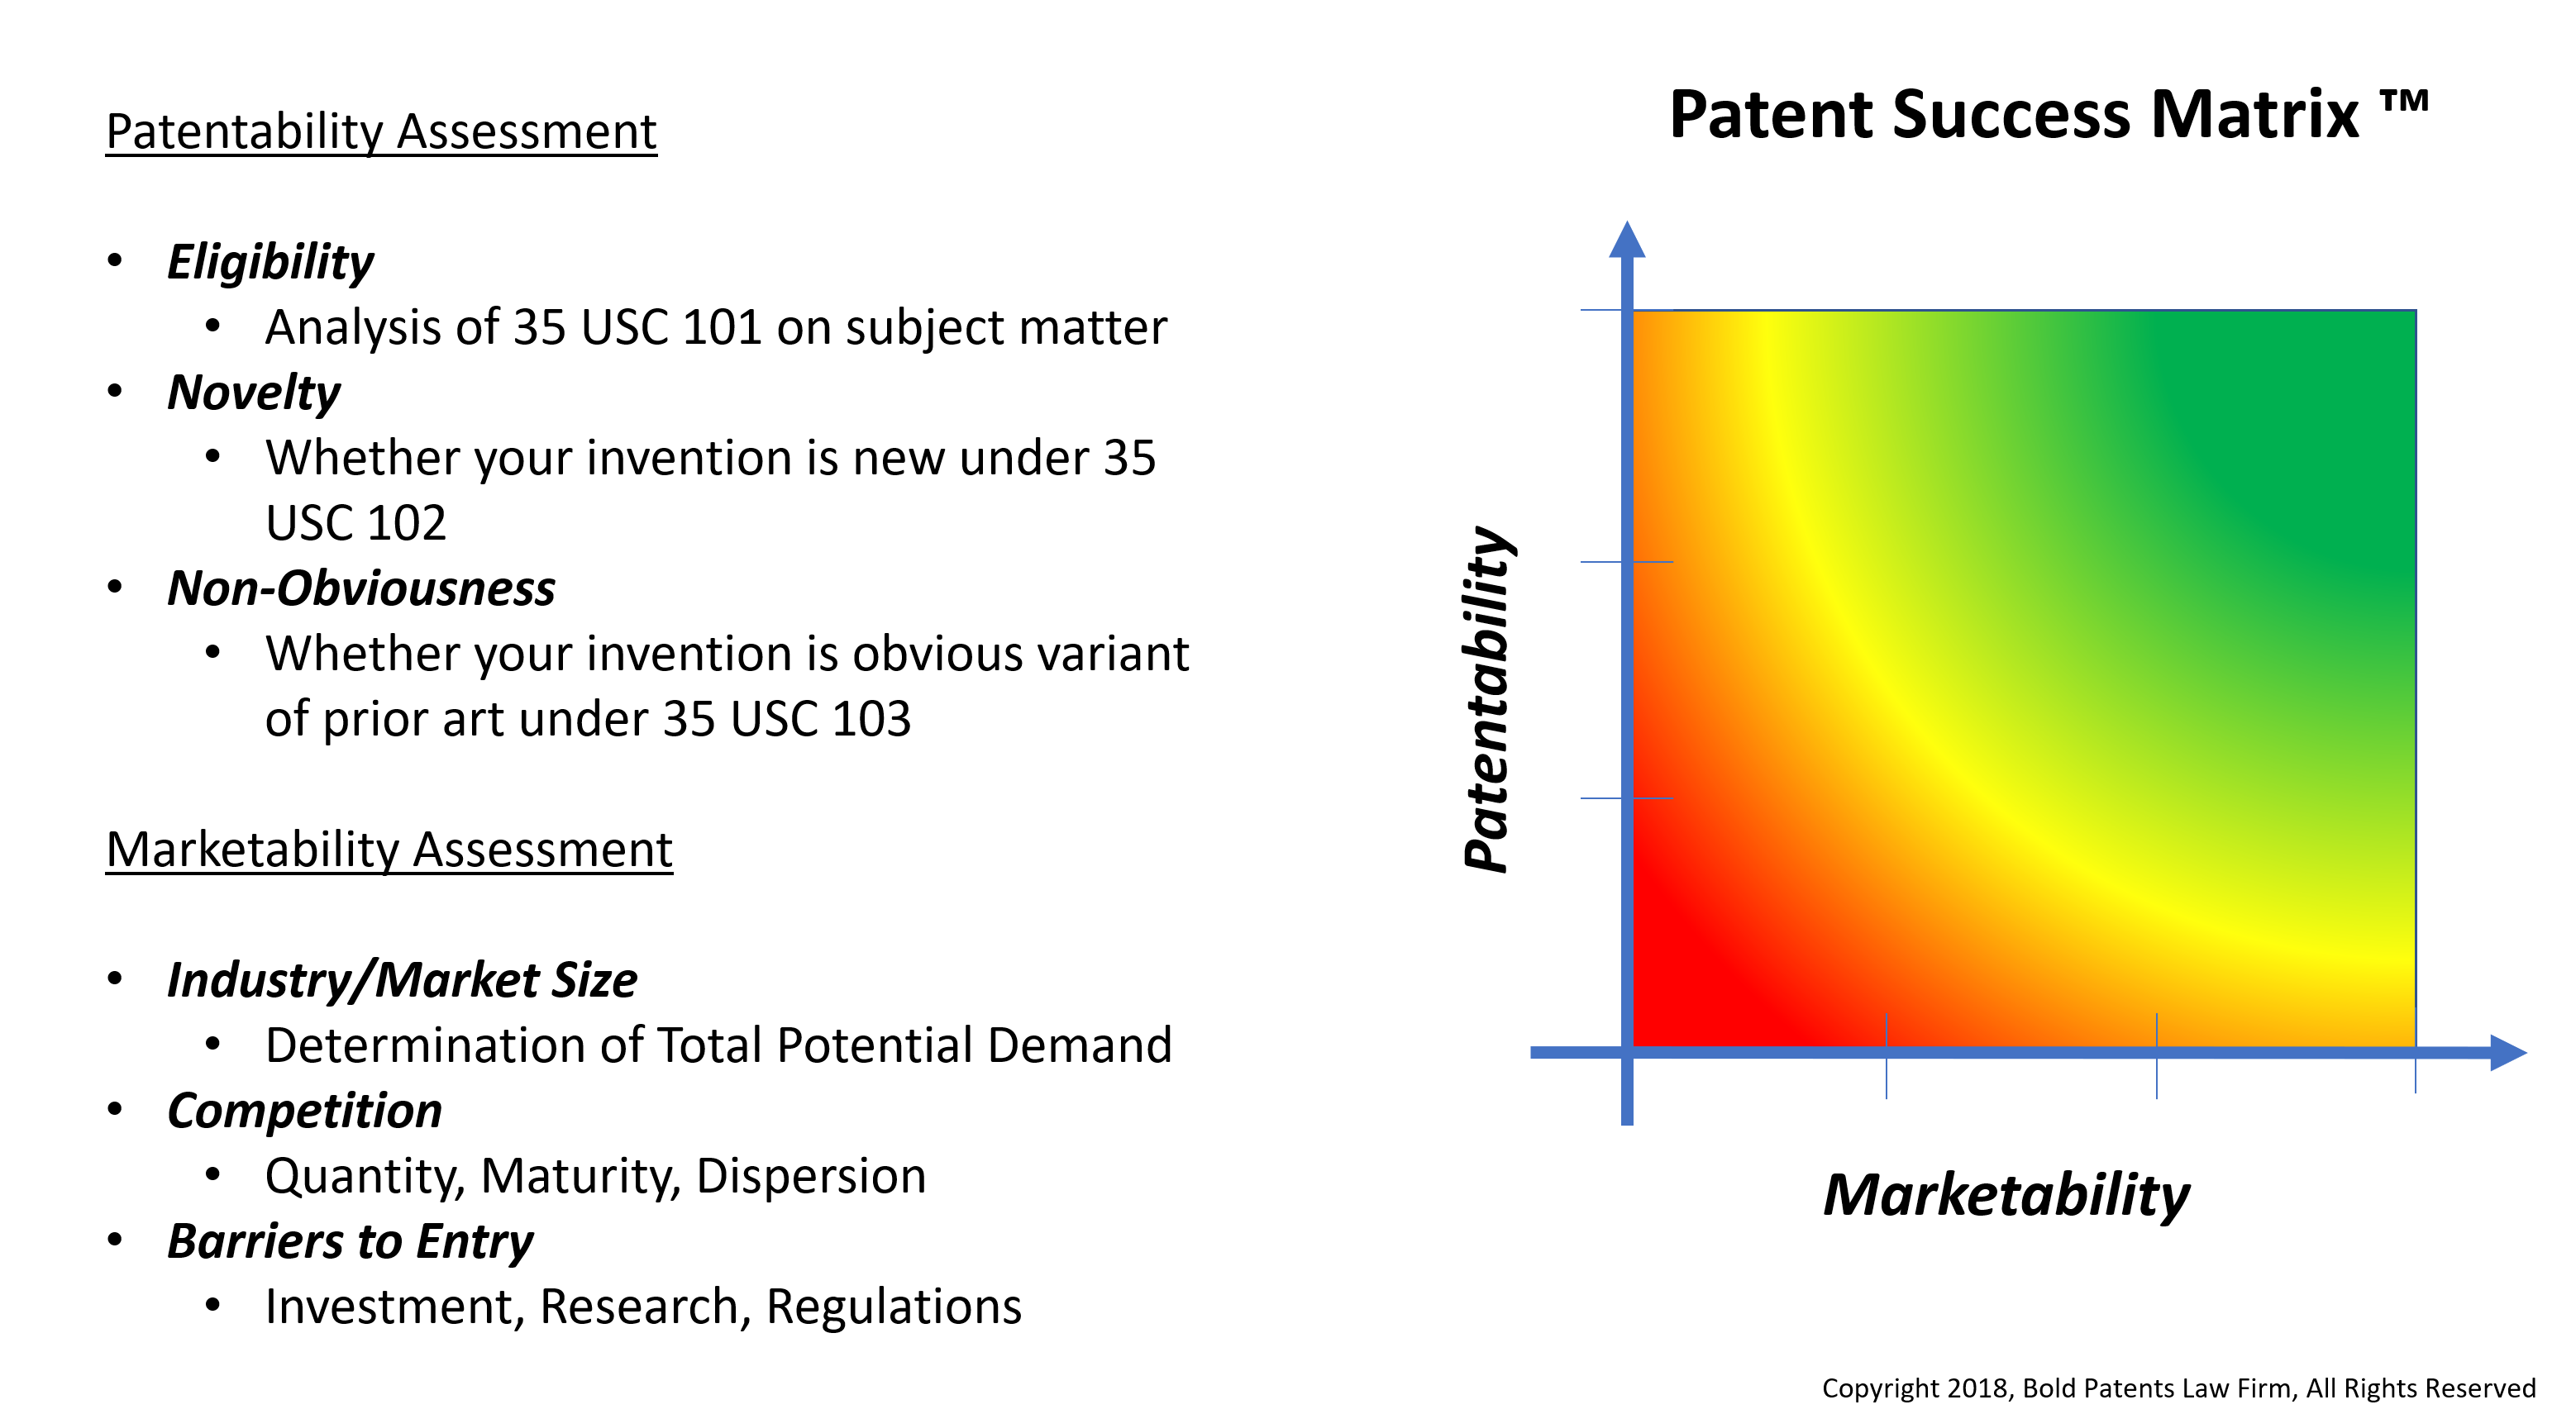 patent success matrix